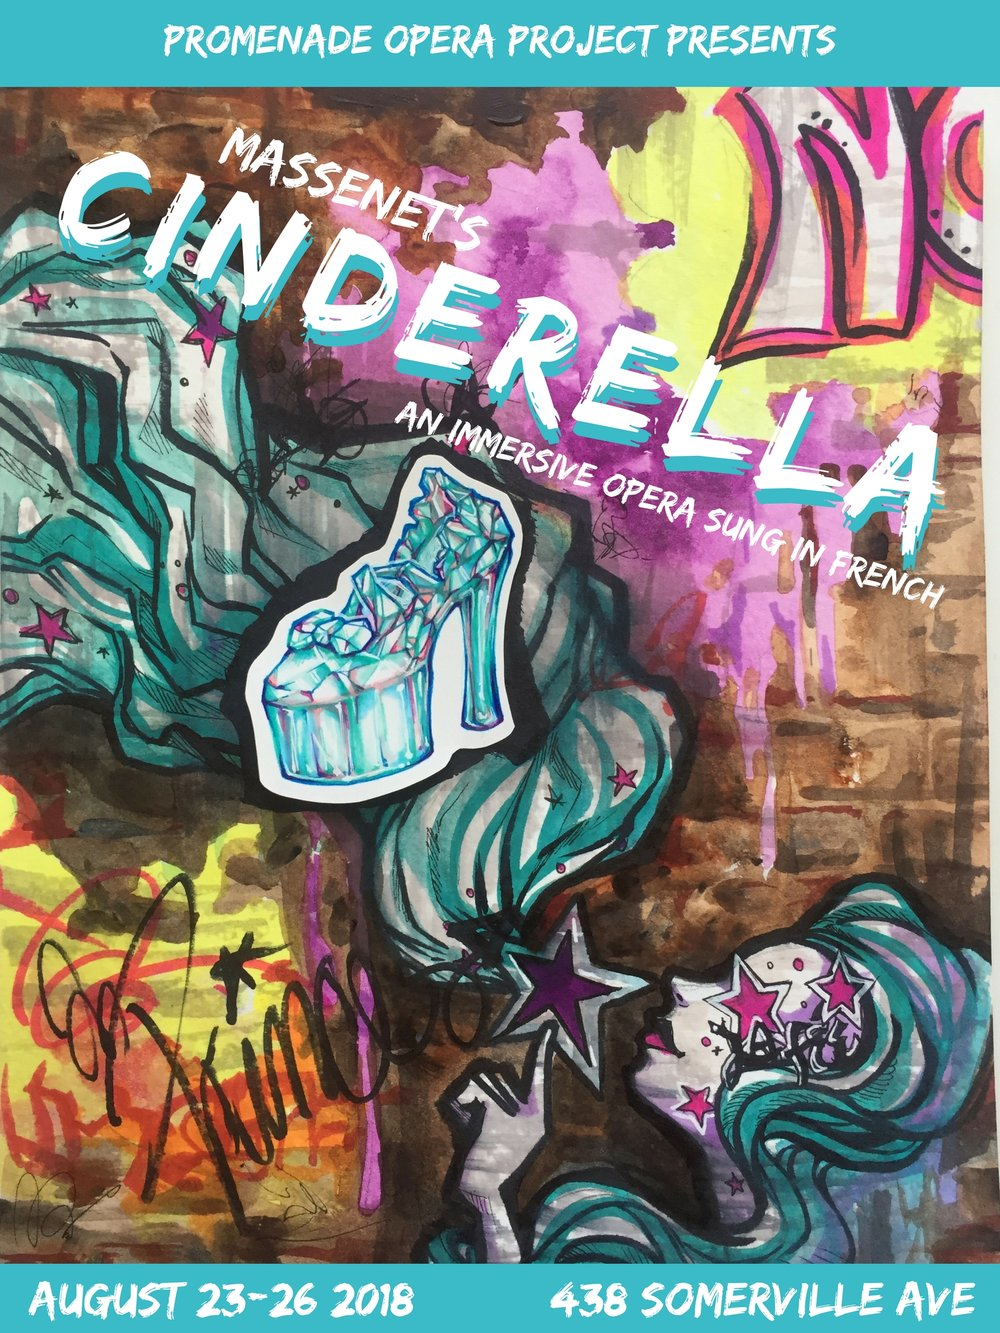 Copy of Copy of Cinderella Poster Idea.jpg